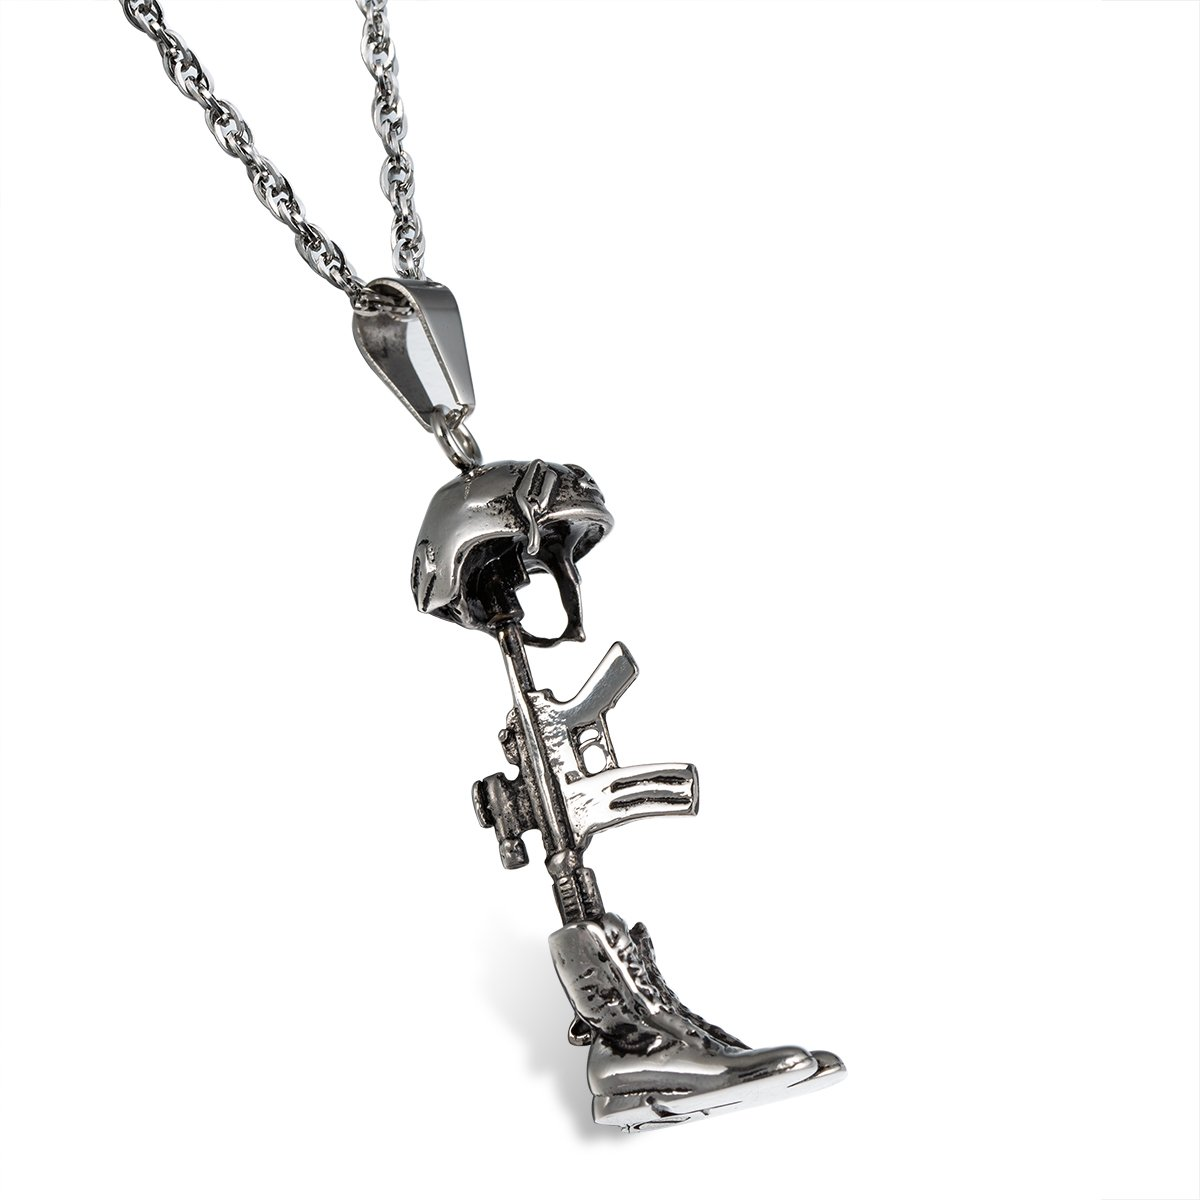 Glimkis Cremation Memorial Ashes Stainless Steel Military Army Navy Soldier Helmet Hat, Gun & Boots Urn Locket Necklace Black